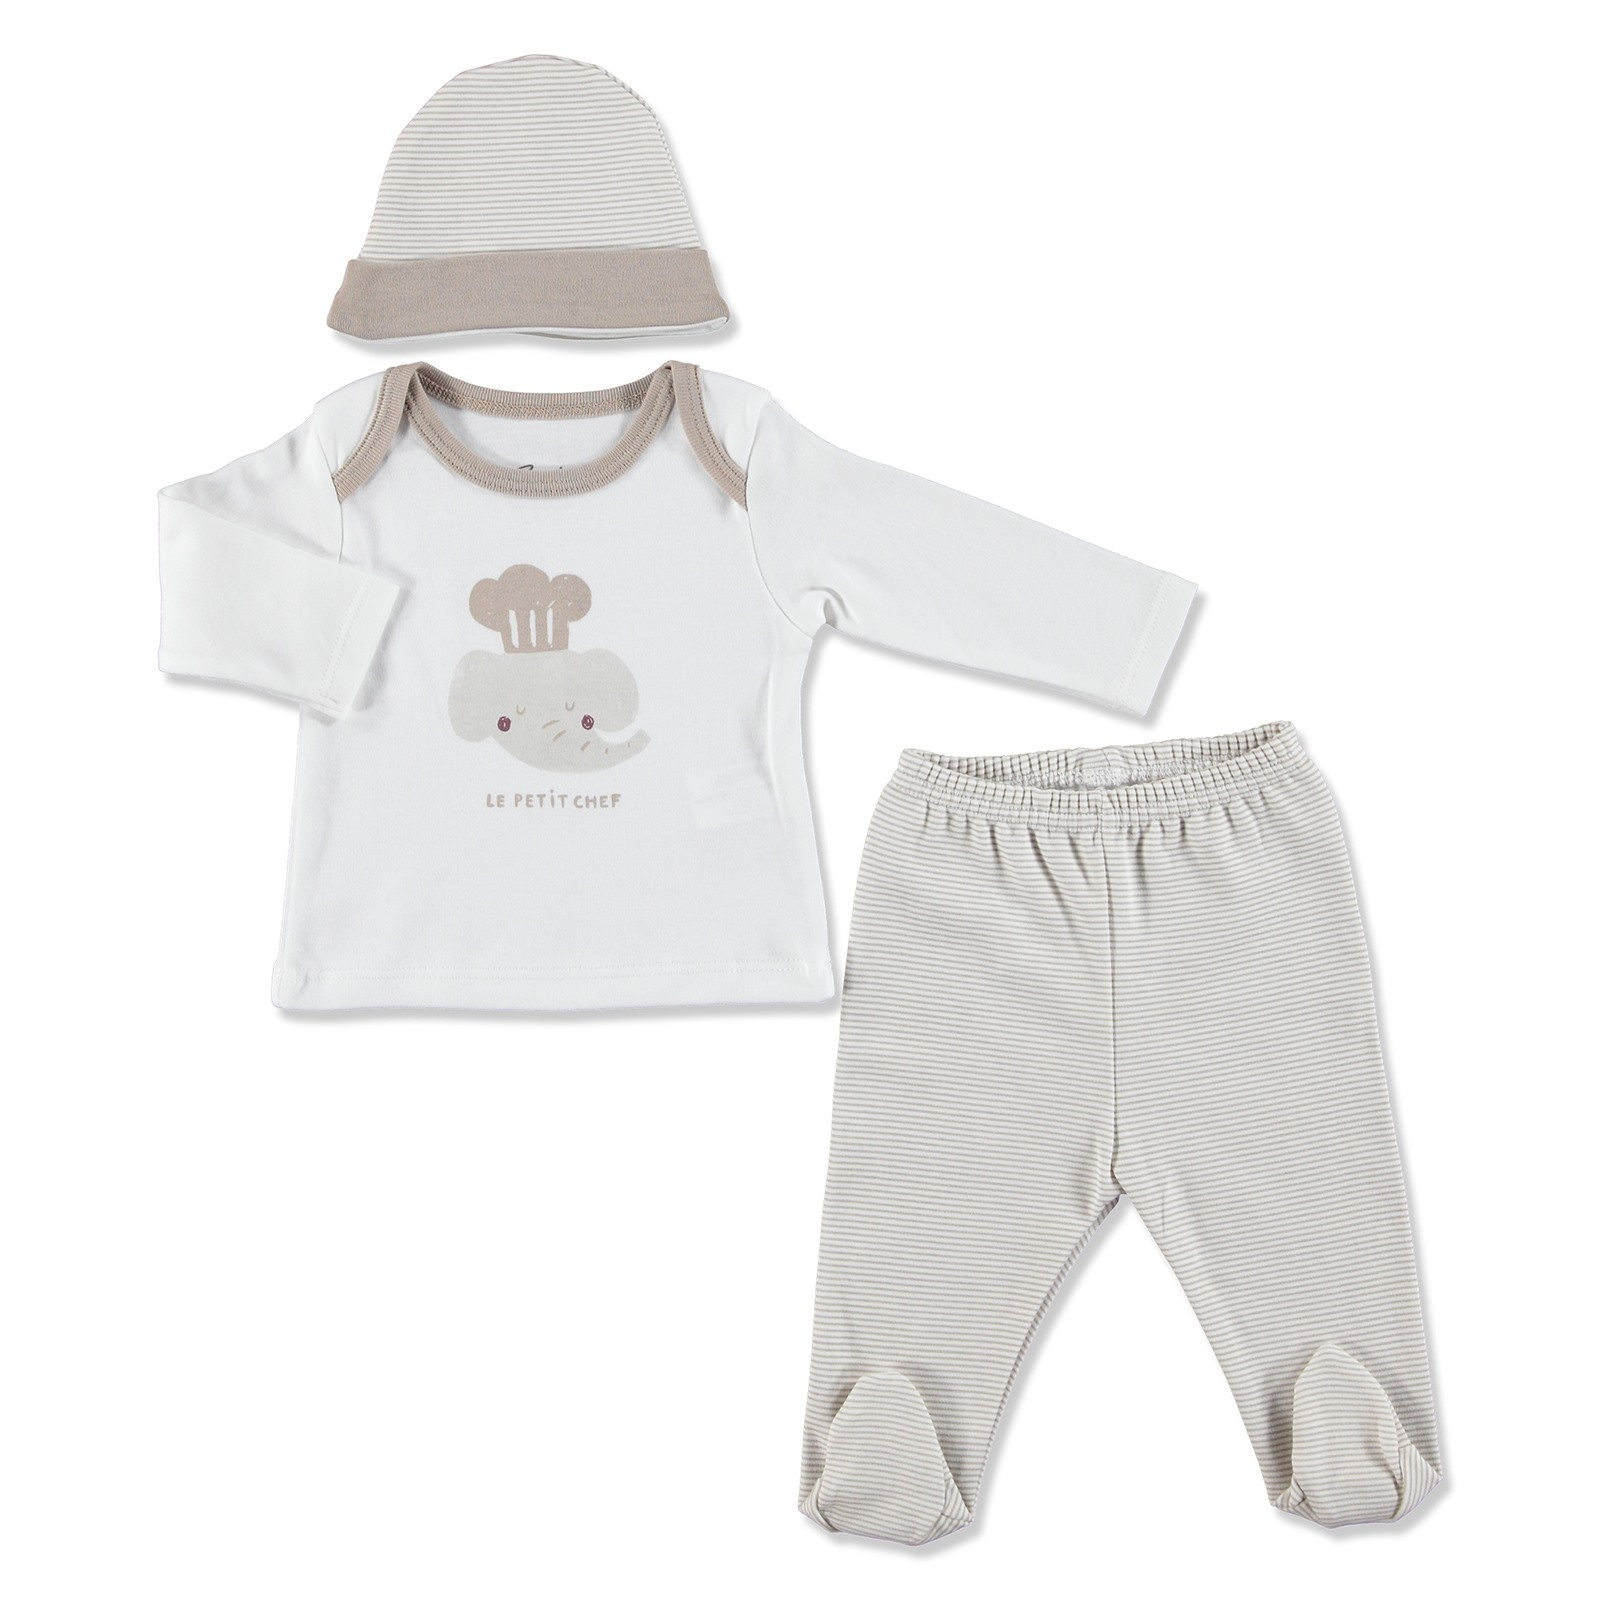 Ebebek Bambaki Summer Baby Boy Little Chief Bodysuit Hat Pant 3 Pcs Set